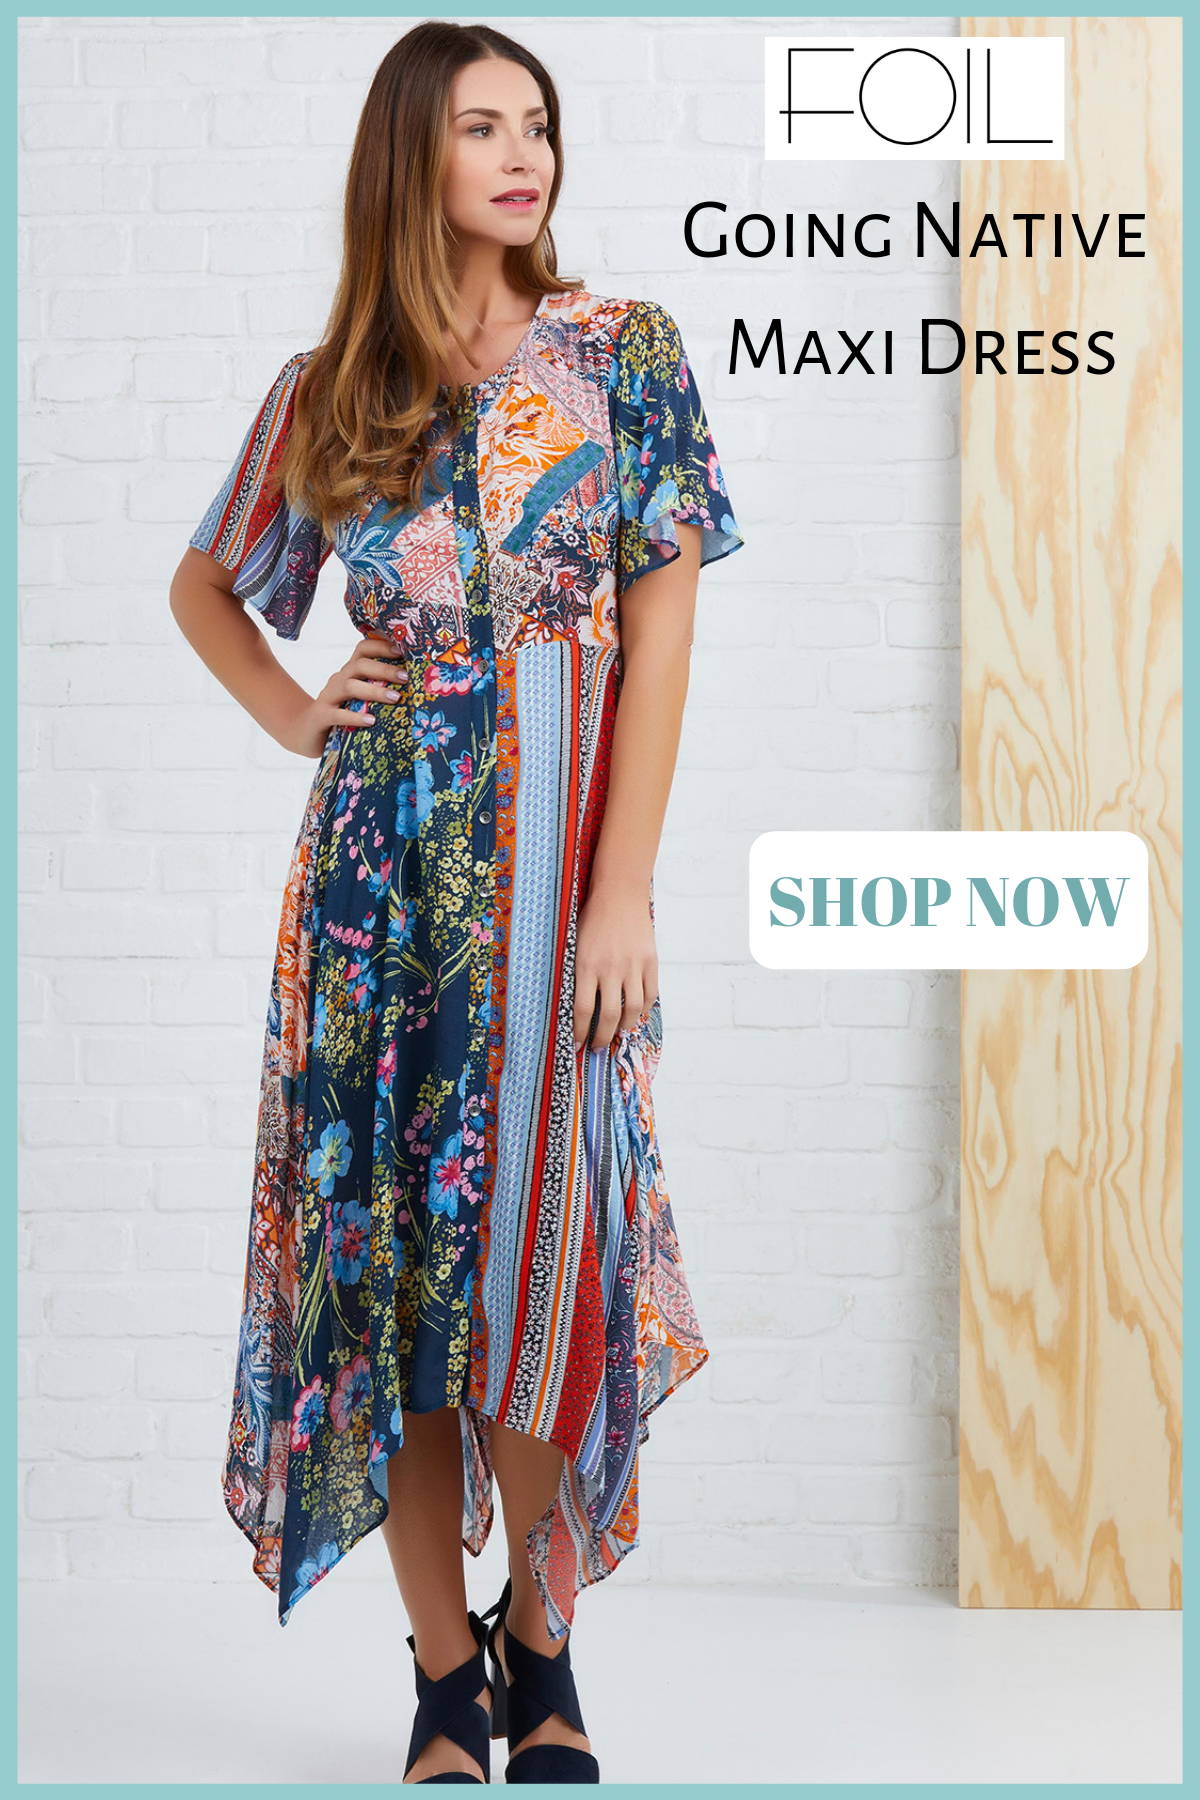 Foil - Going Native Maxi Dress - Pizazz Boutique